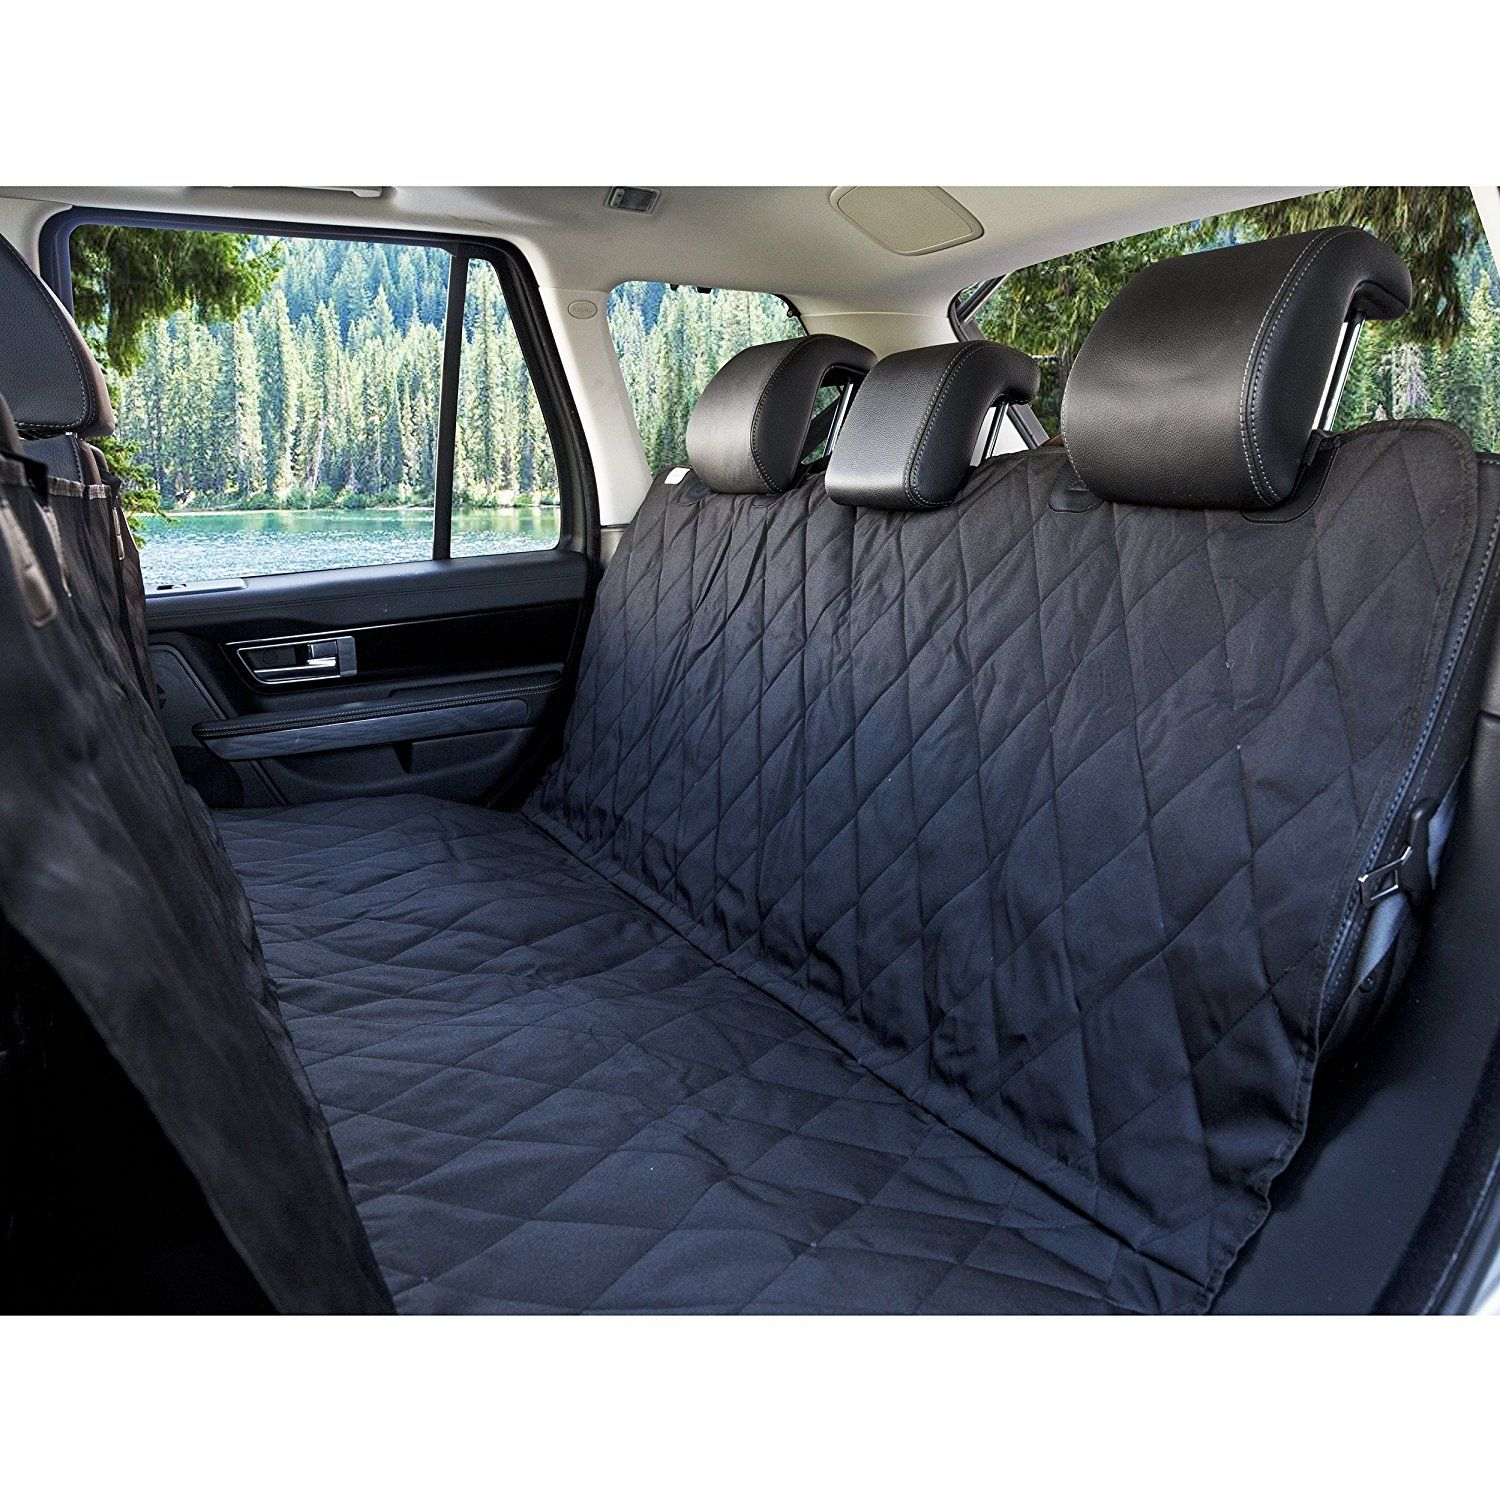 Amazon Com Barksbar Luxury Pet Car Seat Cover With Seat Anchors For Cars Trucks And Suv S Black Wate Pet Car Seat Covers Pet Car Seat Dog Car Seat Cover